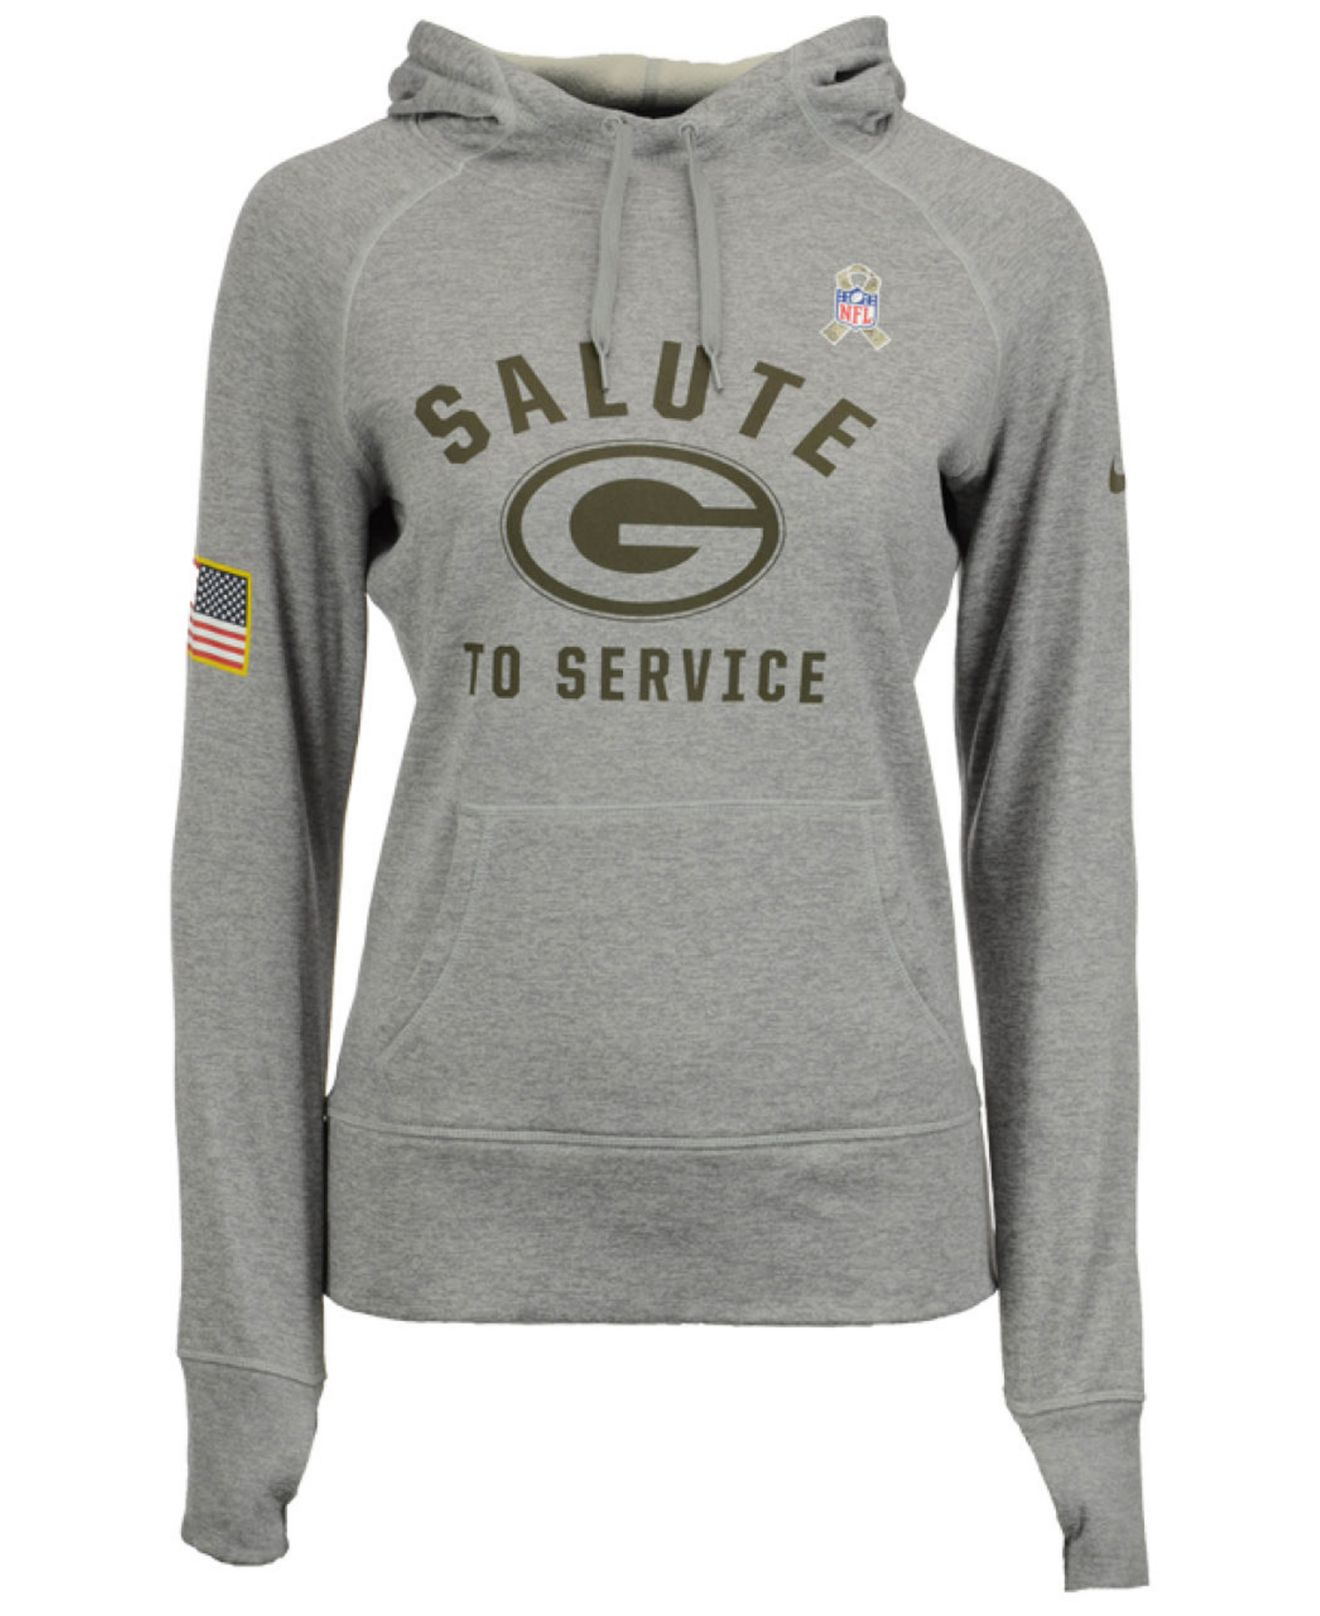 Lyst - Nike Women s Green Bay Packers Salute To Service Hoodie in Gray 647ba220d